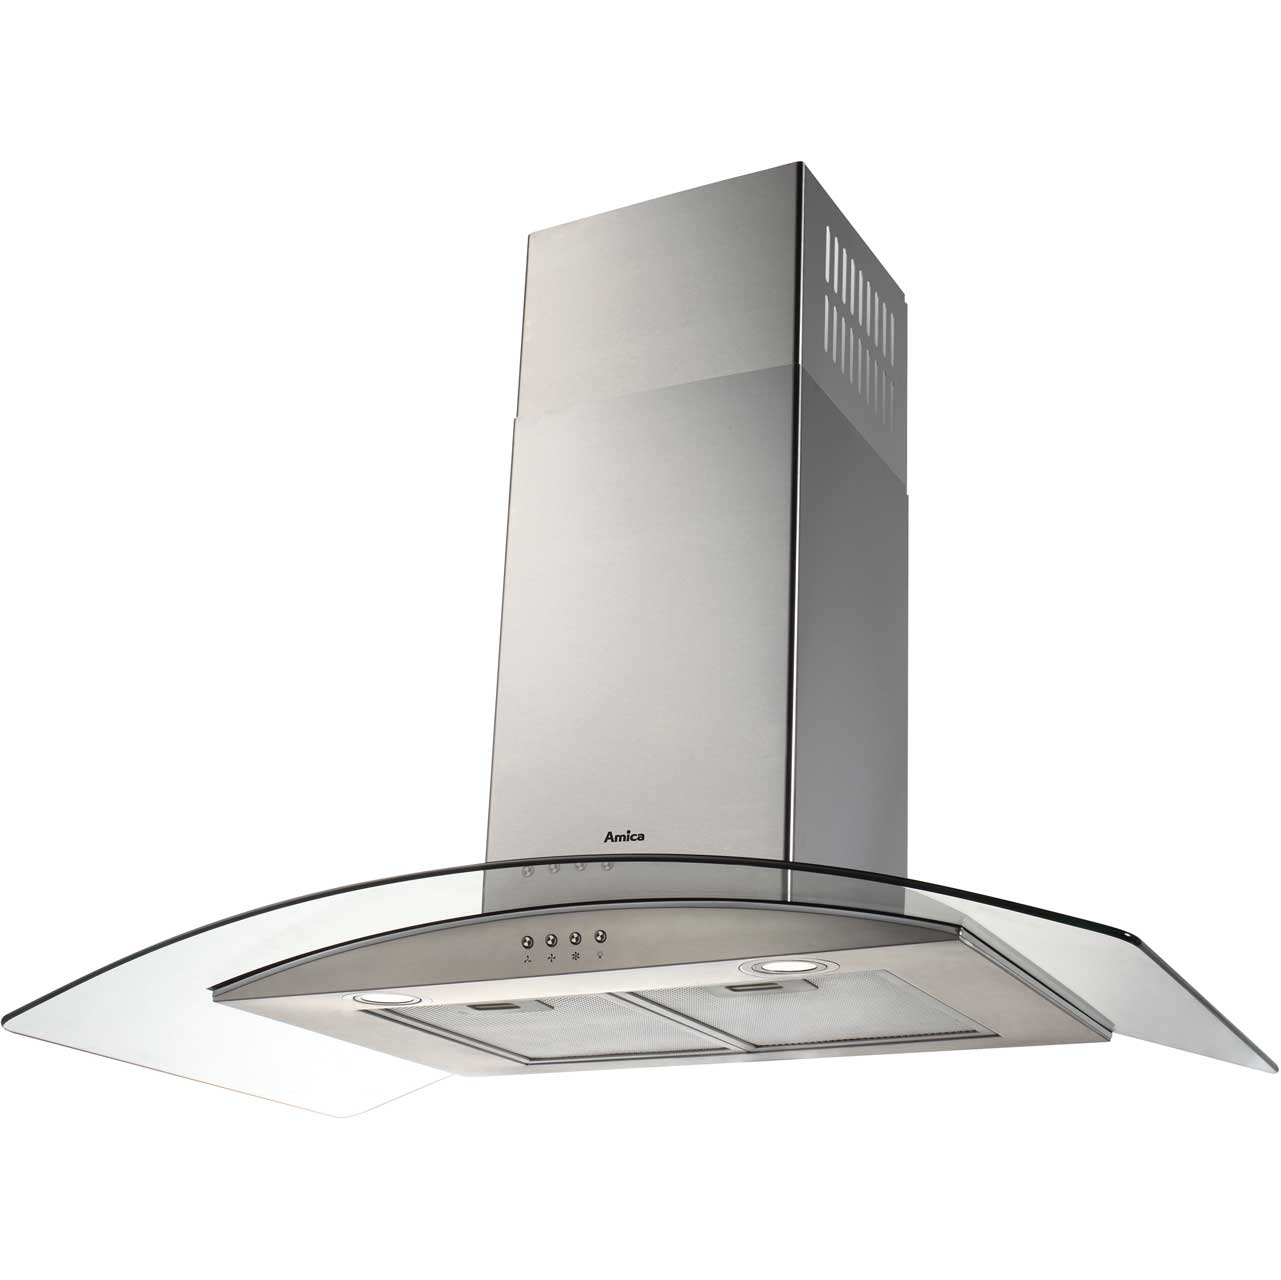 Amica OKP931G Integrated Cooker Hood in Stainless Steel